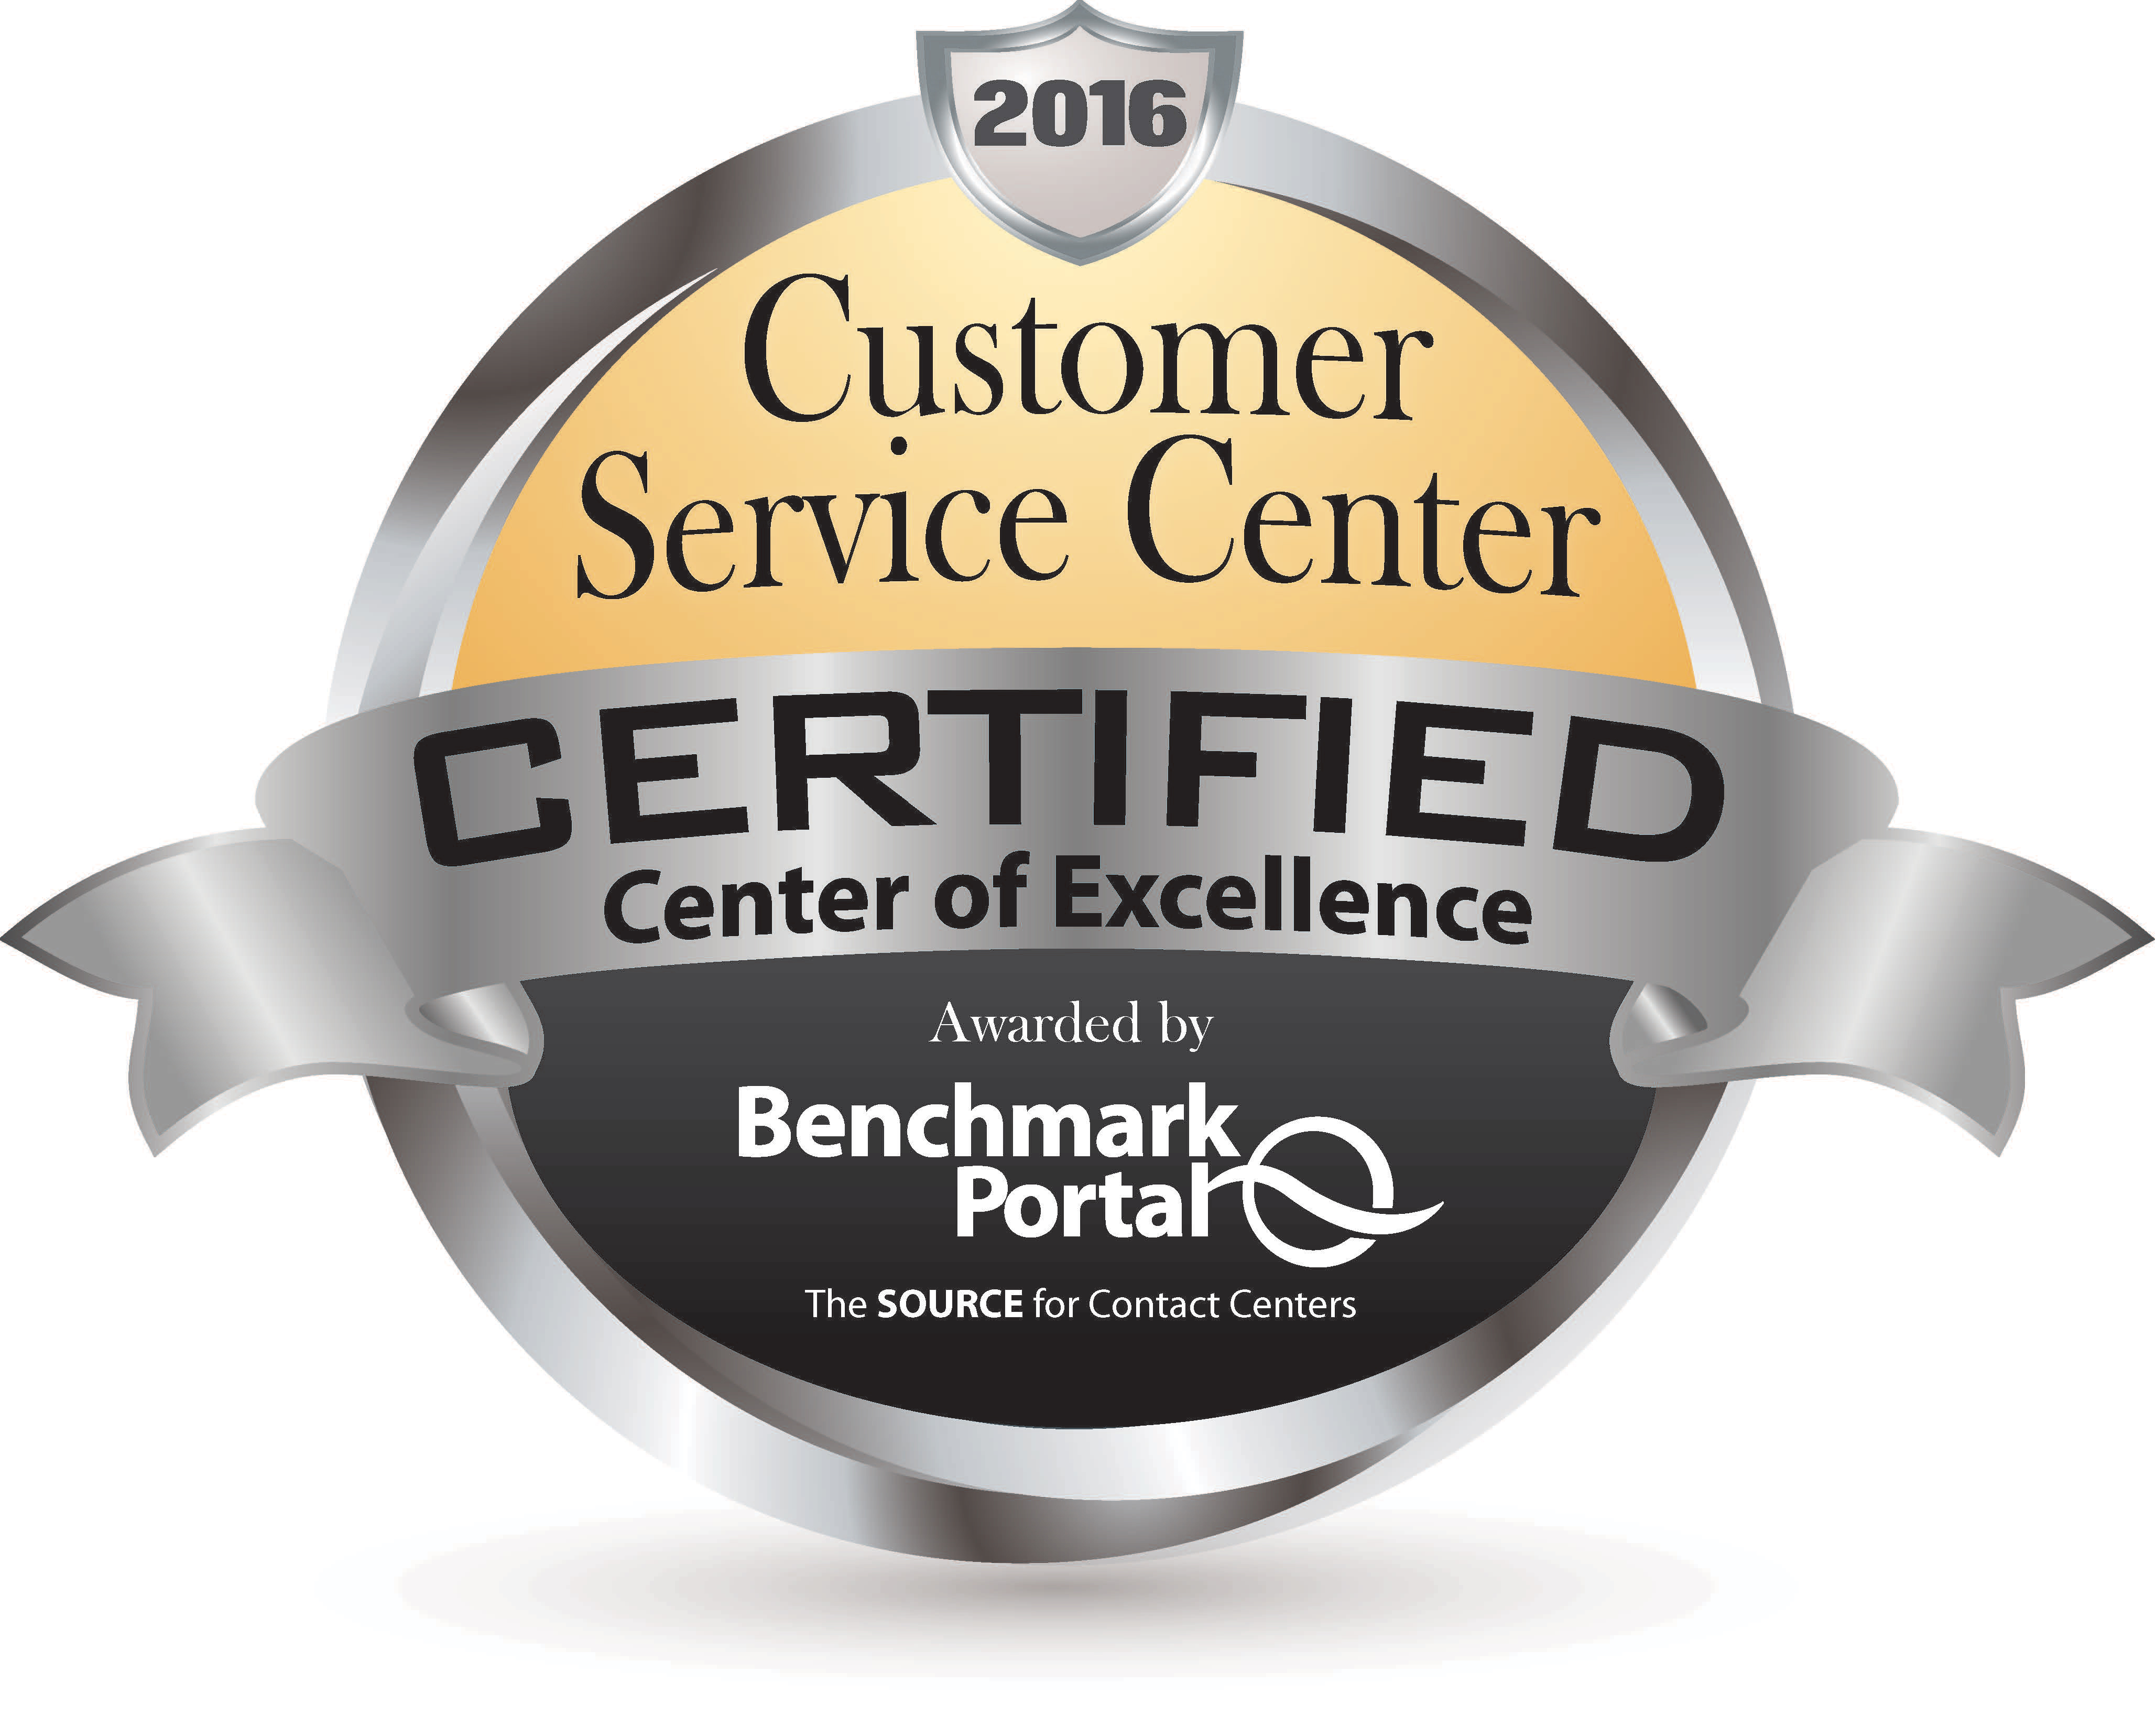 EFG Companies has been awarded the BenchmarkPortal Center of Excellence certification for the third year in a row. The award reflects EFG Companies' continued efforts to optimize its call center efficiency and performance. (Graphic: Business Wire)